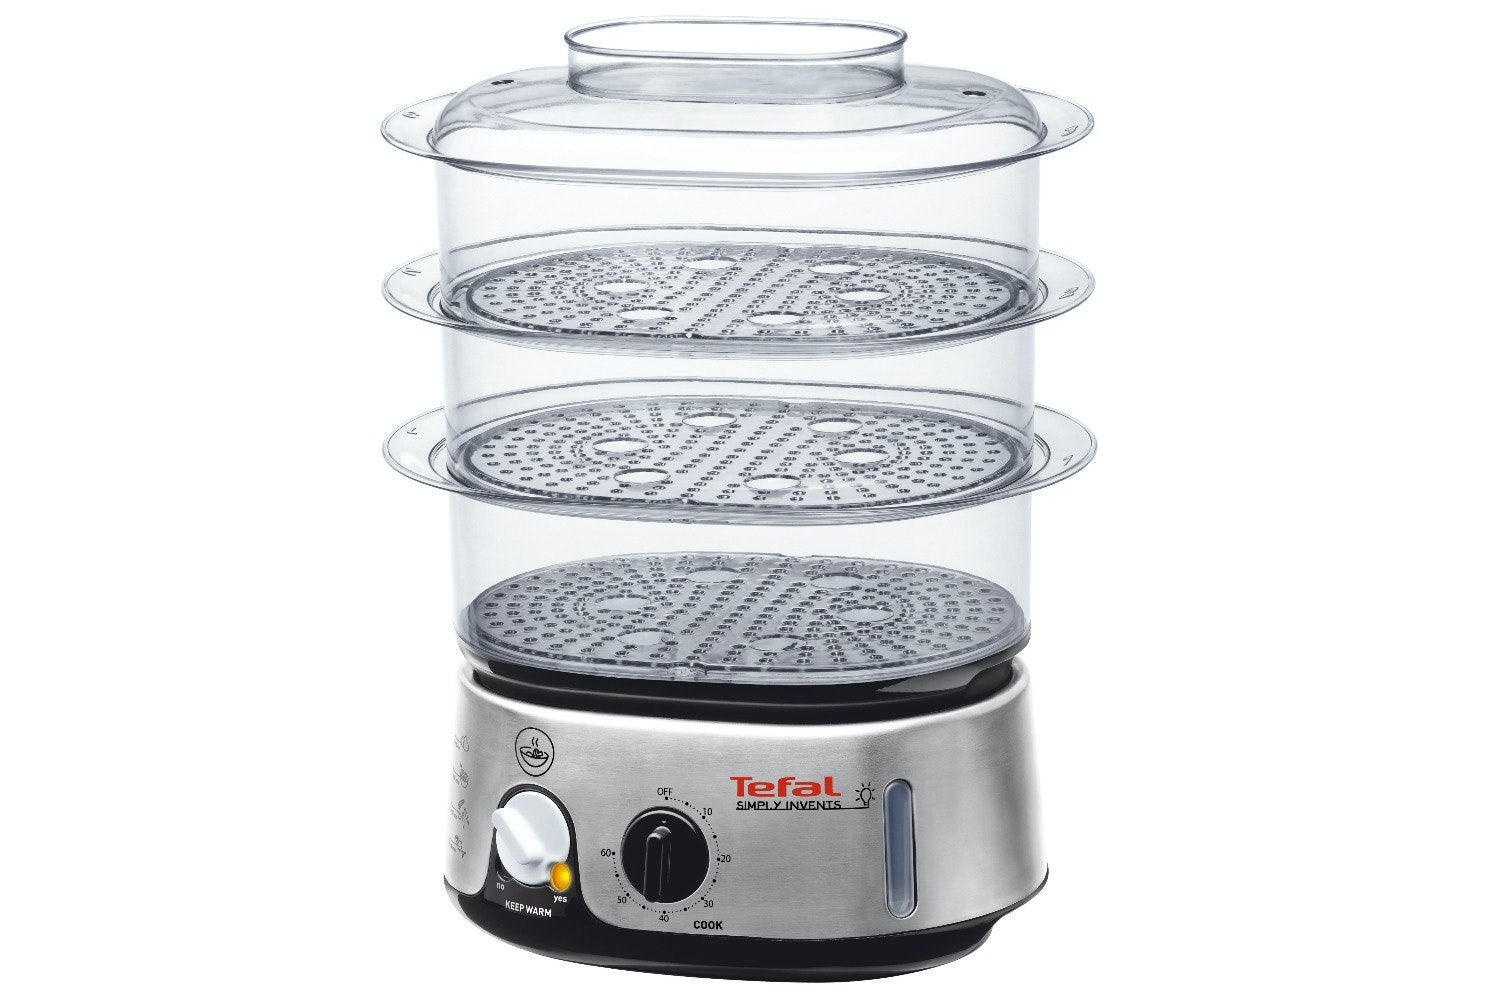 Tefal Simply Invents 3 Tier Steamer | VC101616